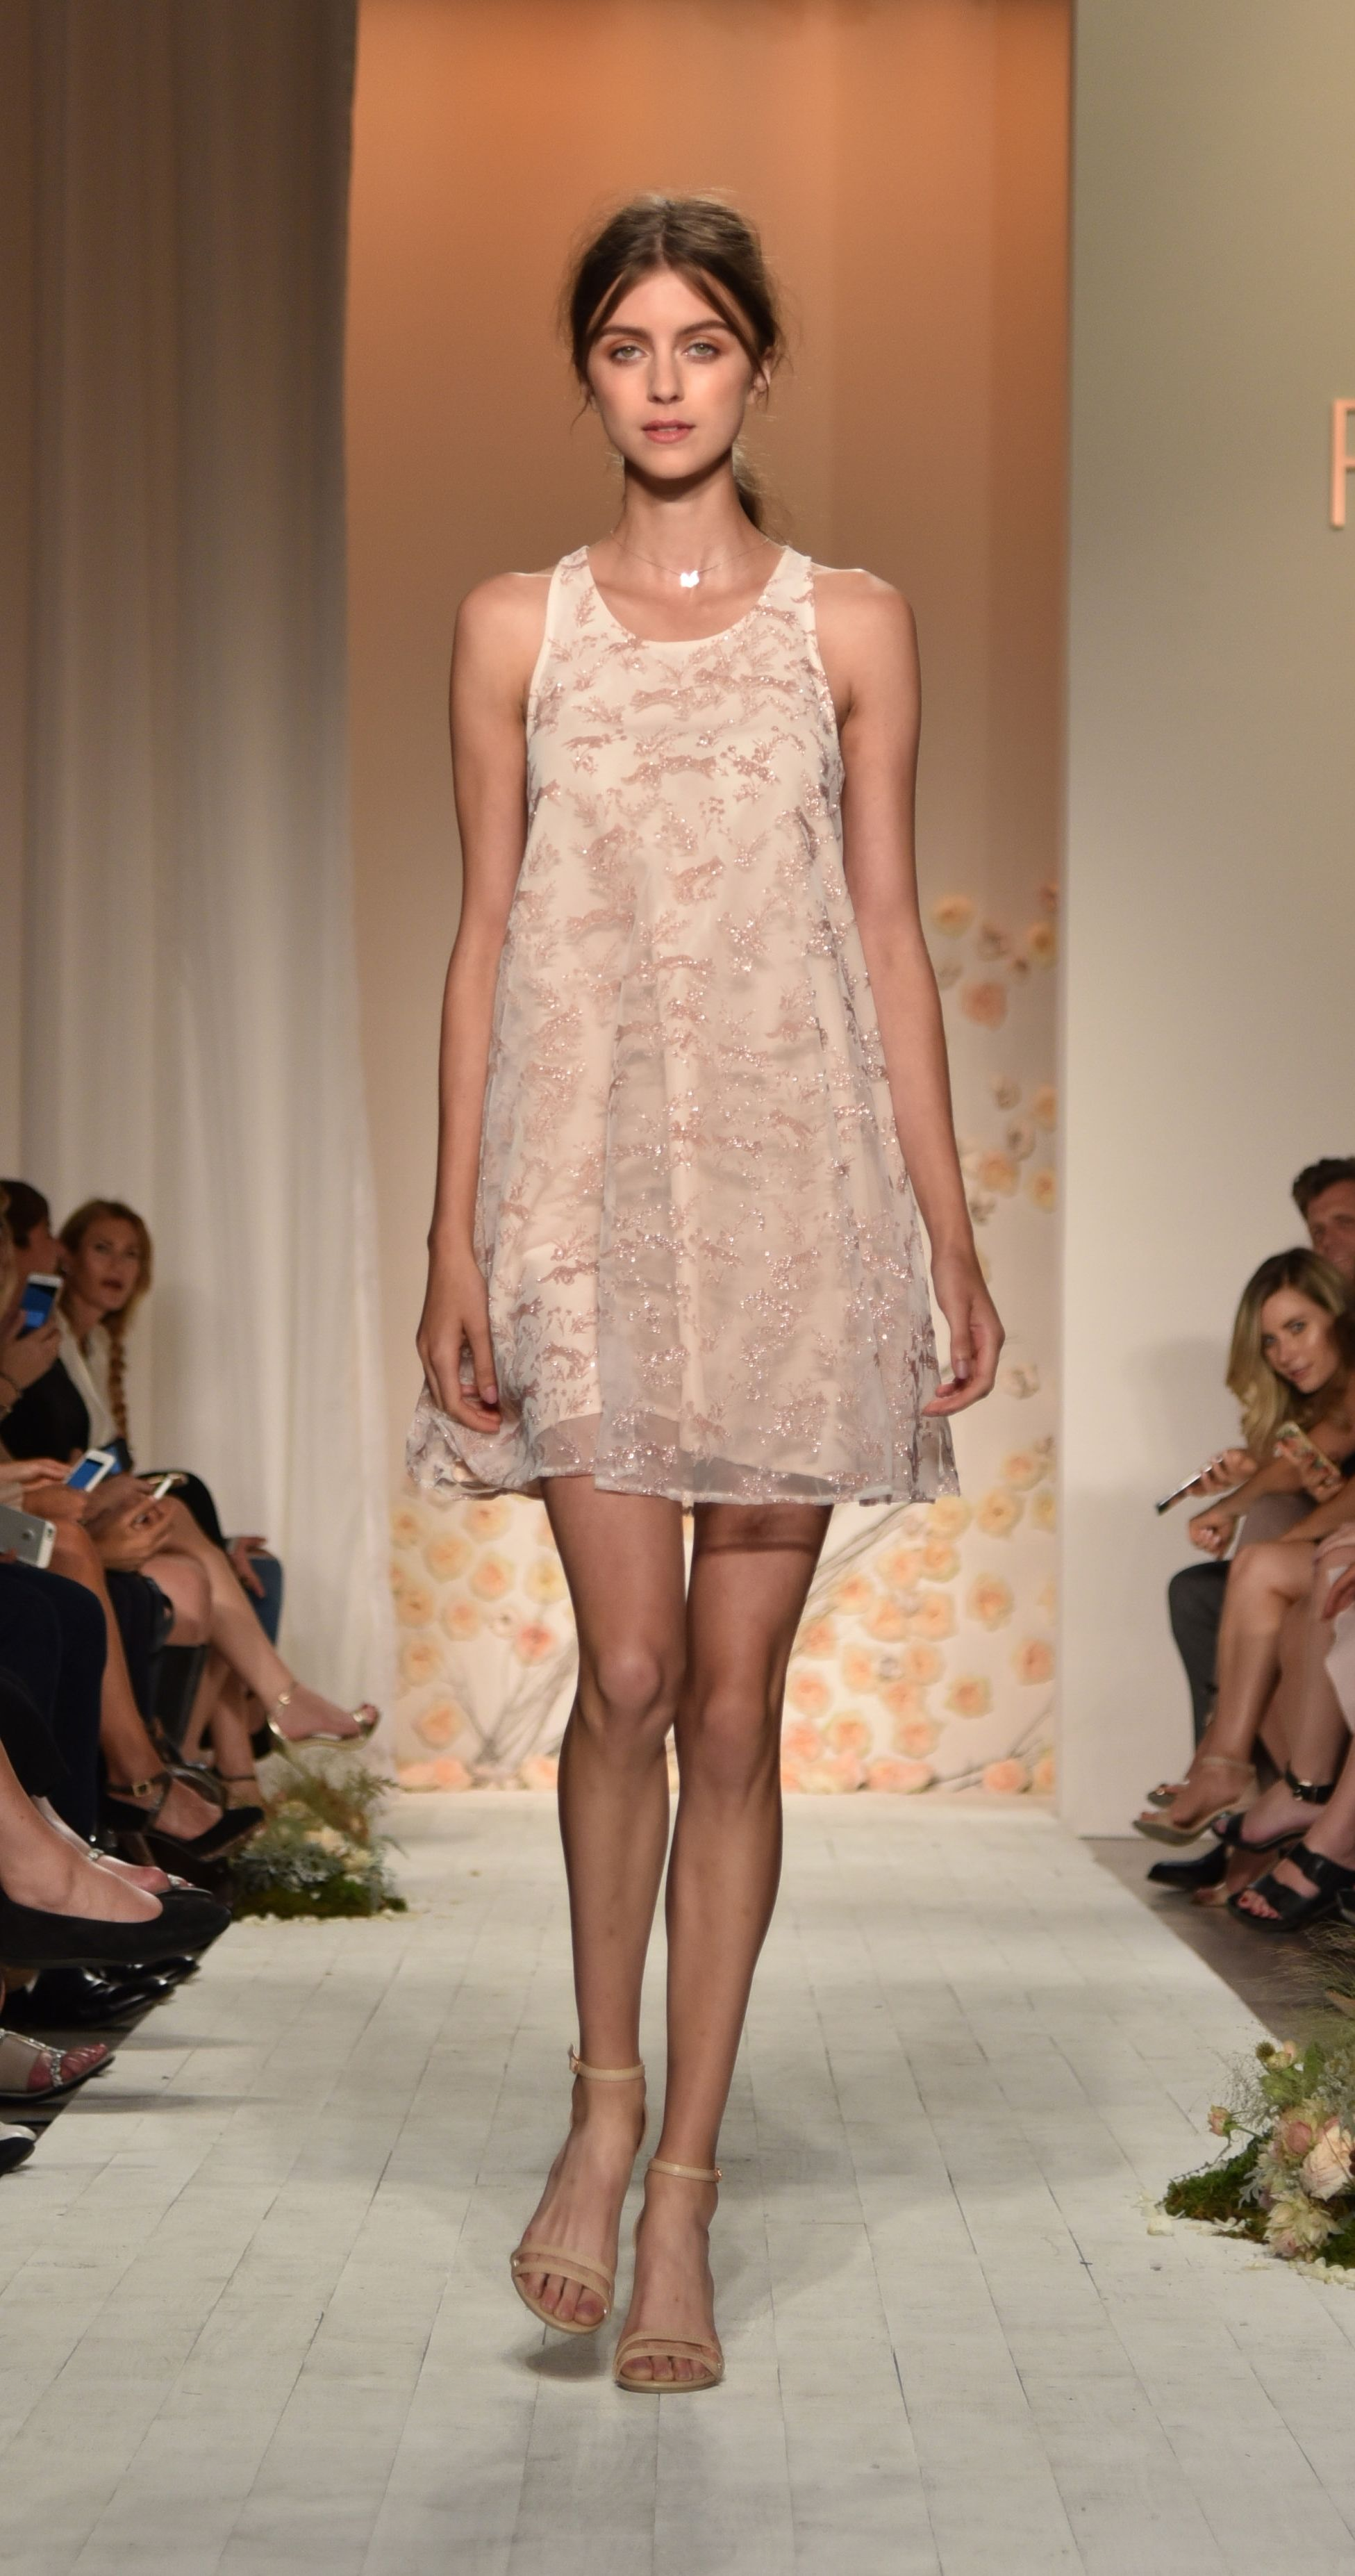 Discover your sense of whimsy wearing this eye-catching women's LC Lauren Conrad Runway look.